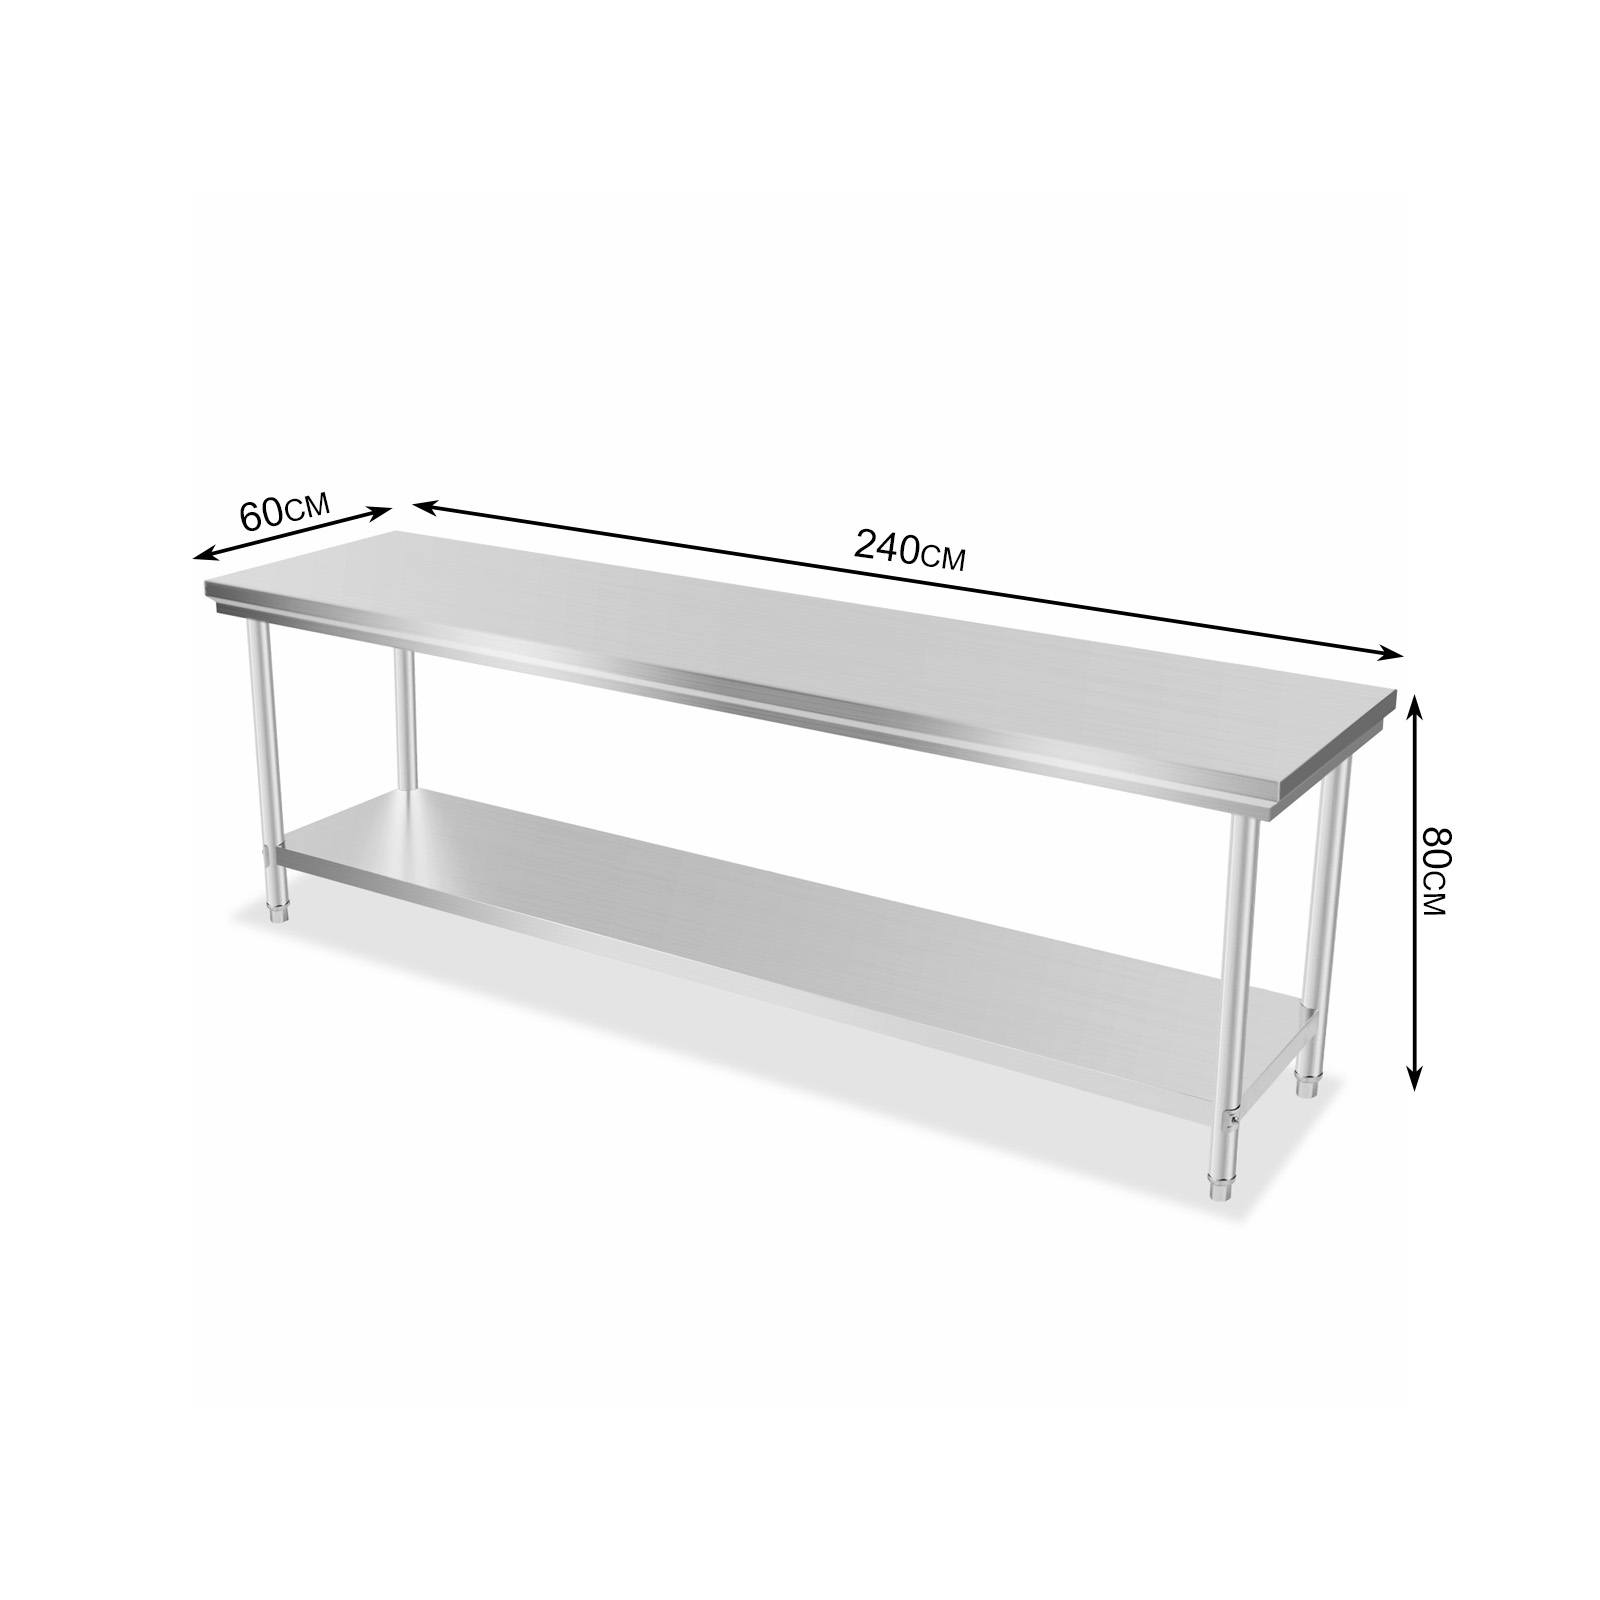 Industrial Kitchen Prep Table: New Commercial Stainless Steel Kitchen Work Prep Table NSF